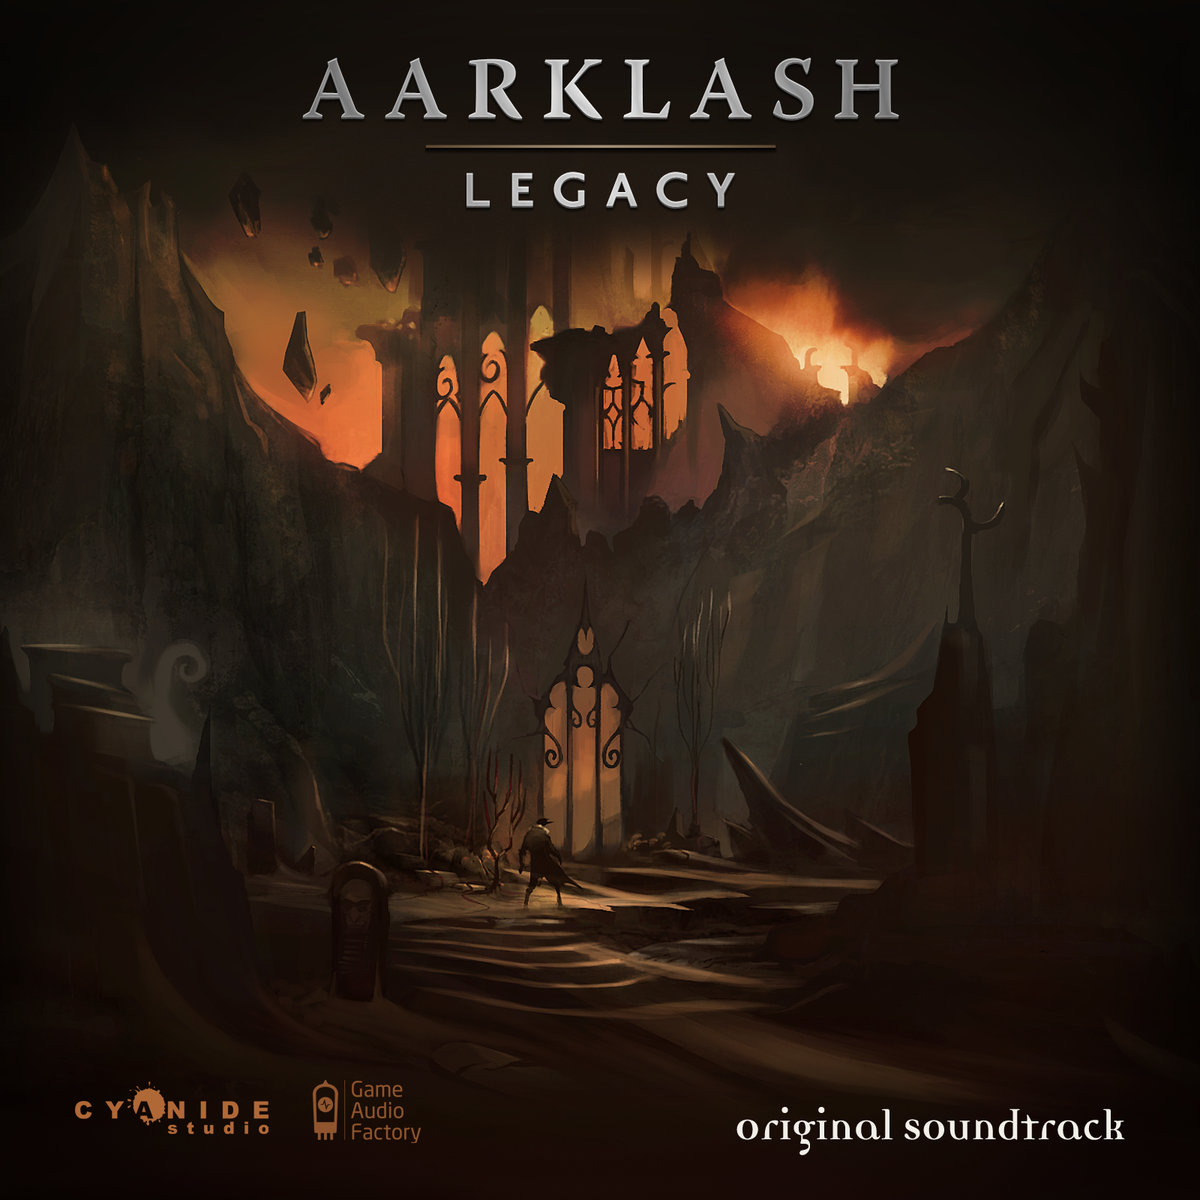 Aaarklash Legacy original soundtrack